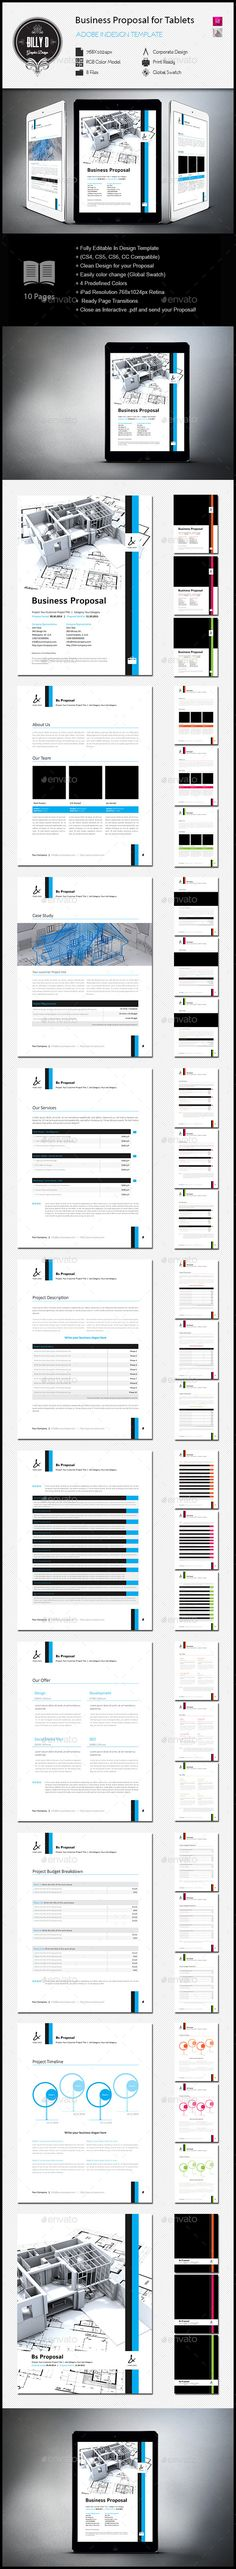 Business Proposal Template for Tablets Business proposal - download business proposal template